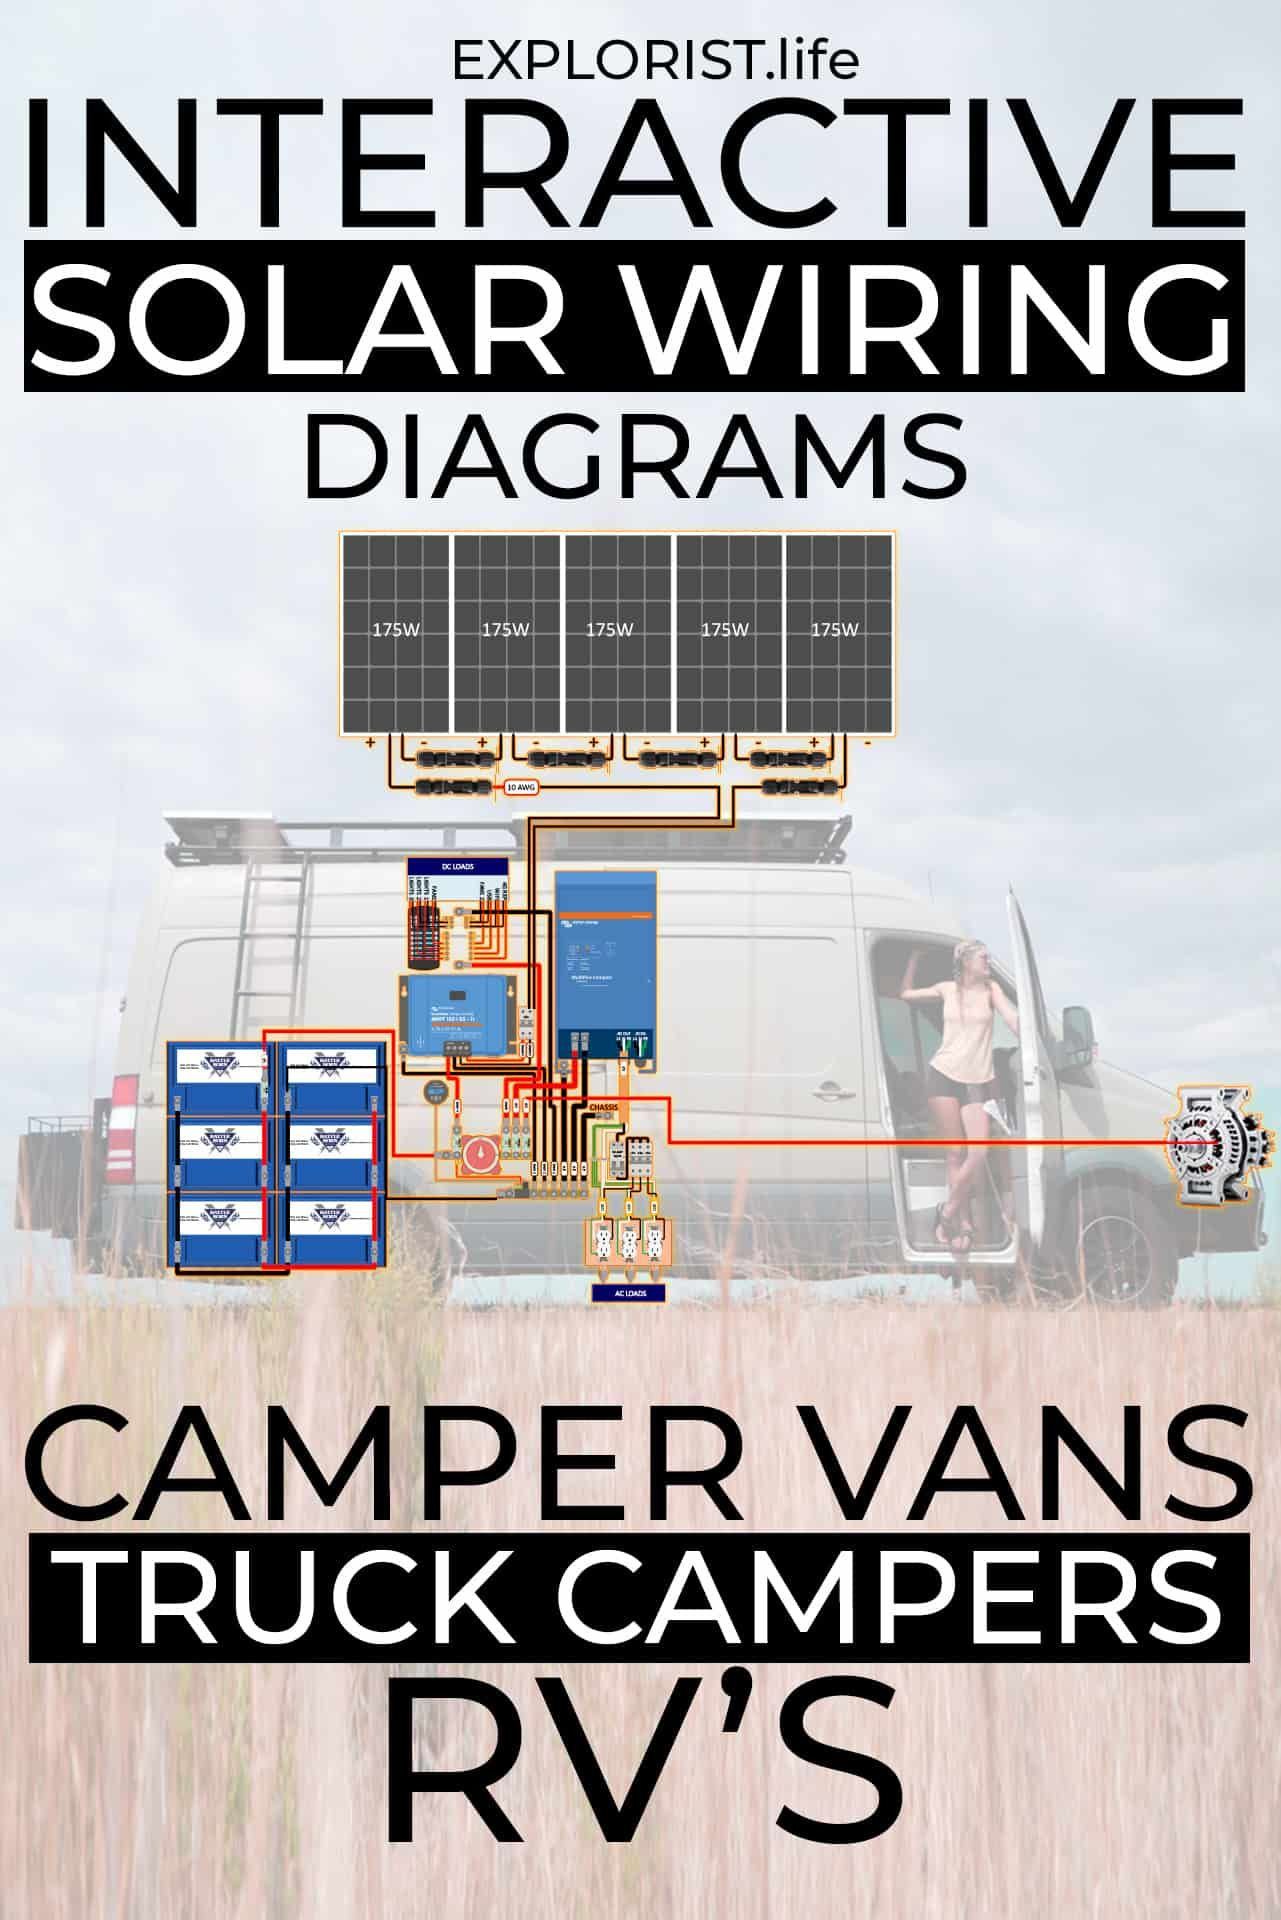 Interactive Diy Solar Wiring Diagrams For Campers  Van U0026 39 S